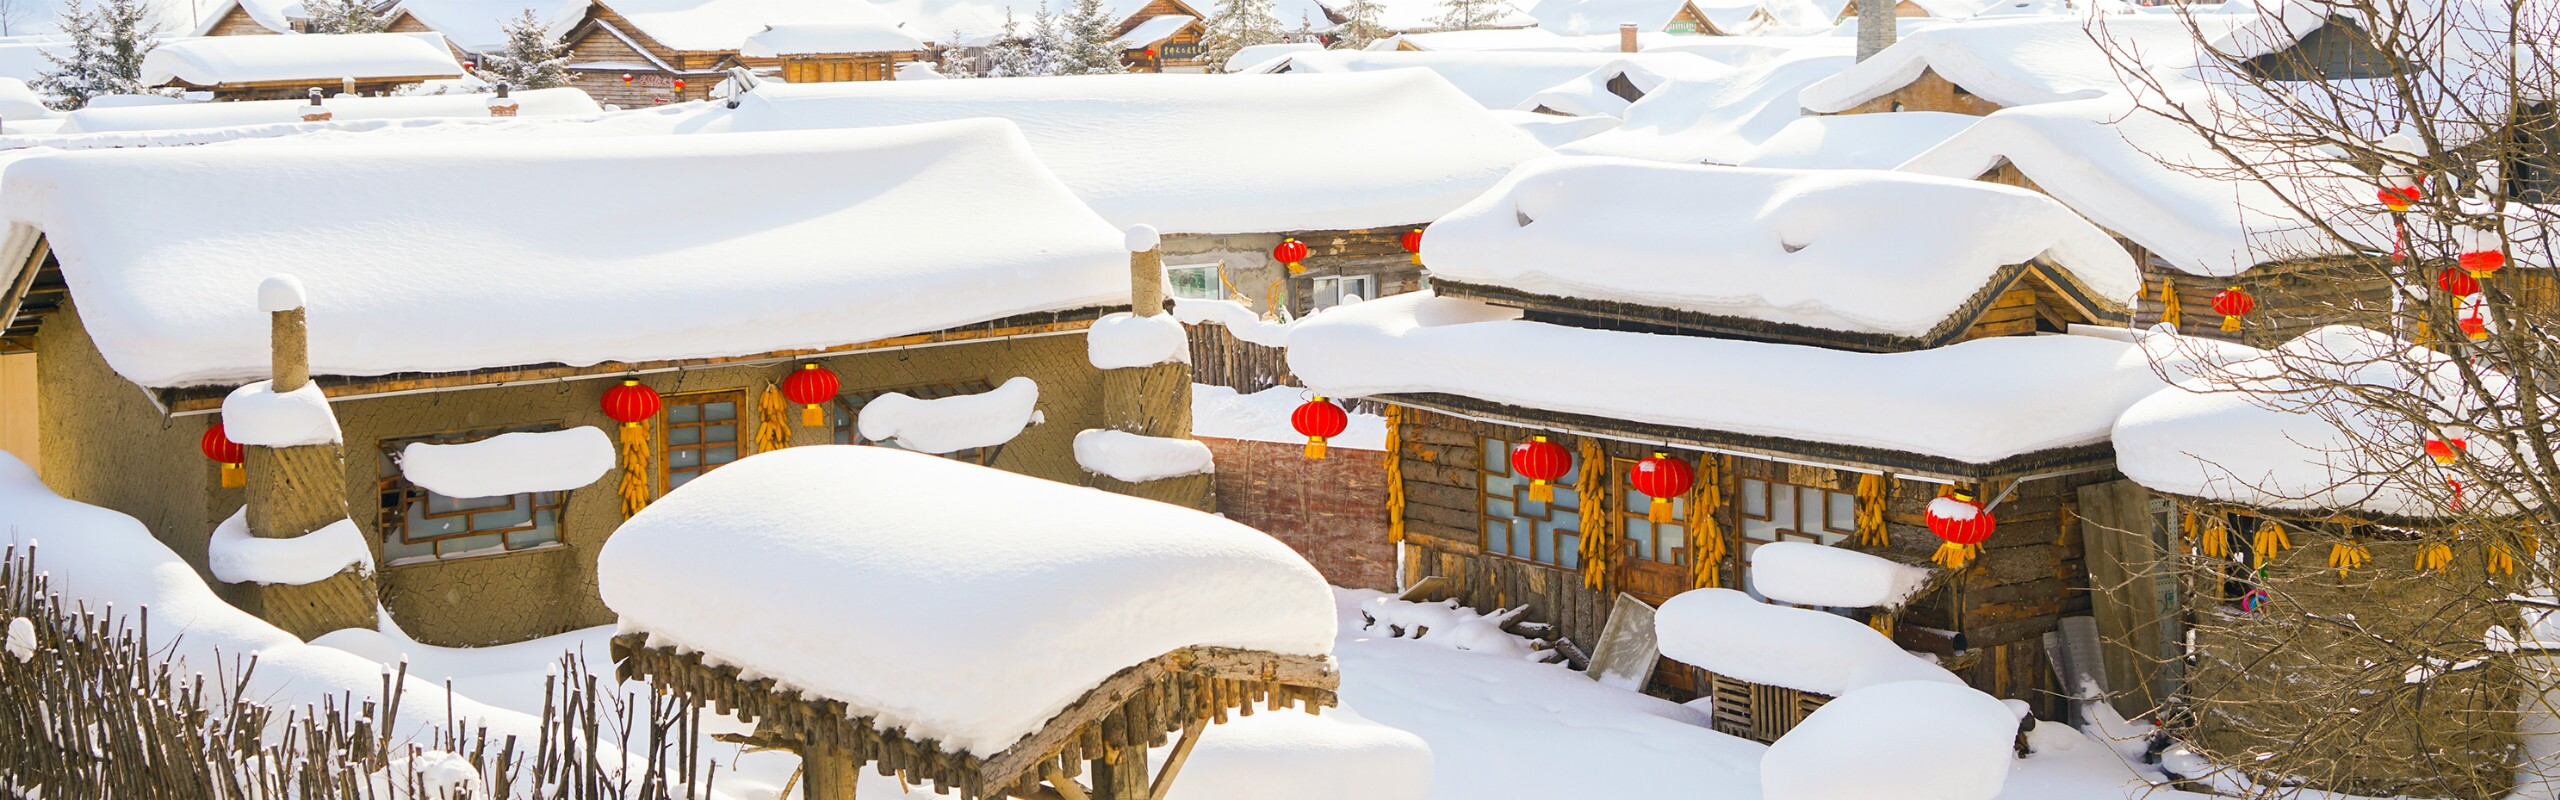 China Winter Holiday Tours 2021/2022